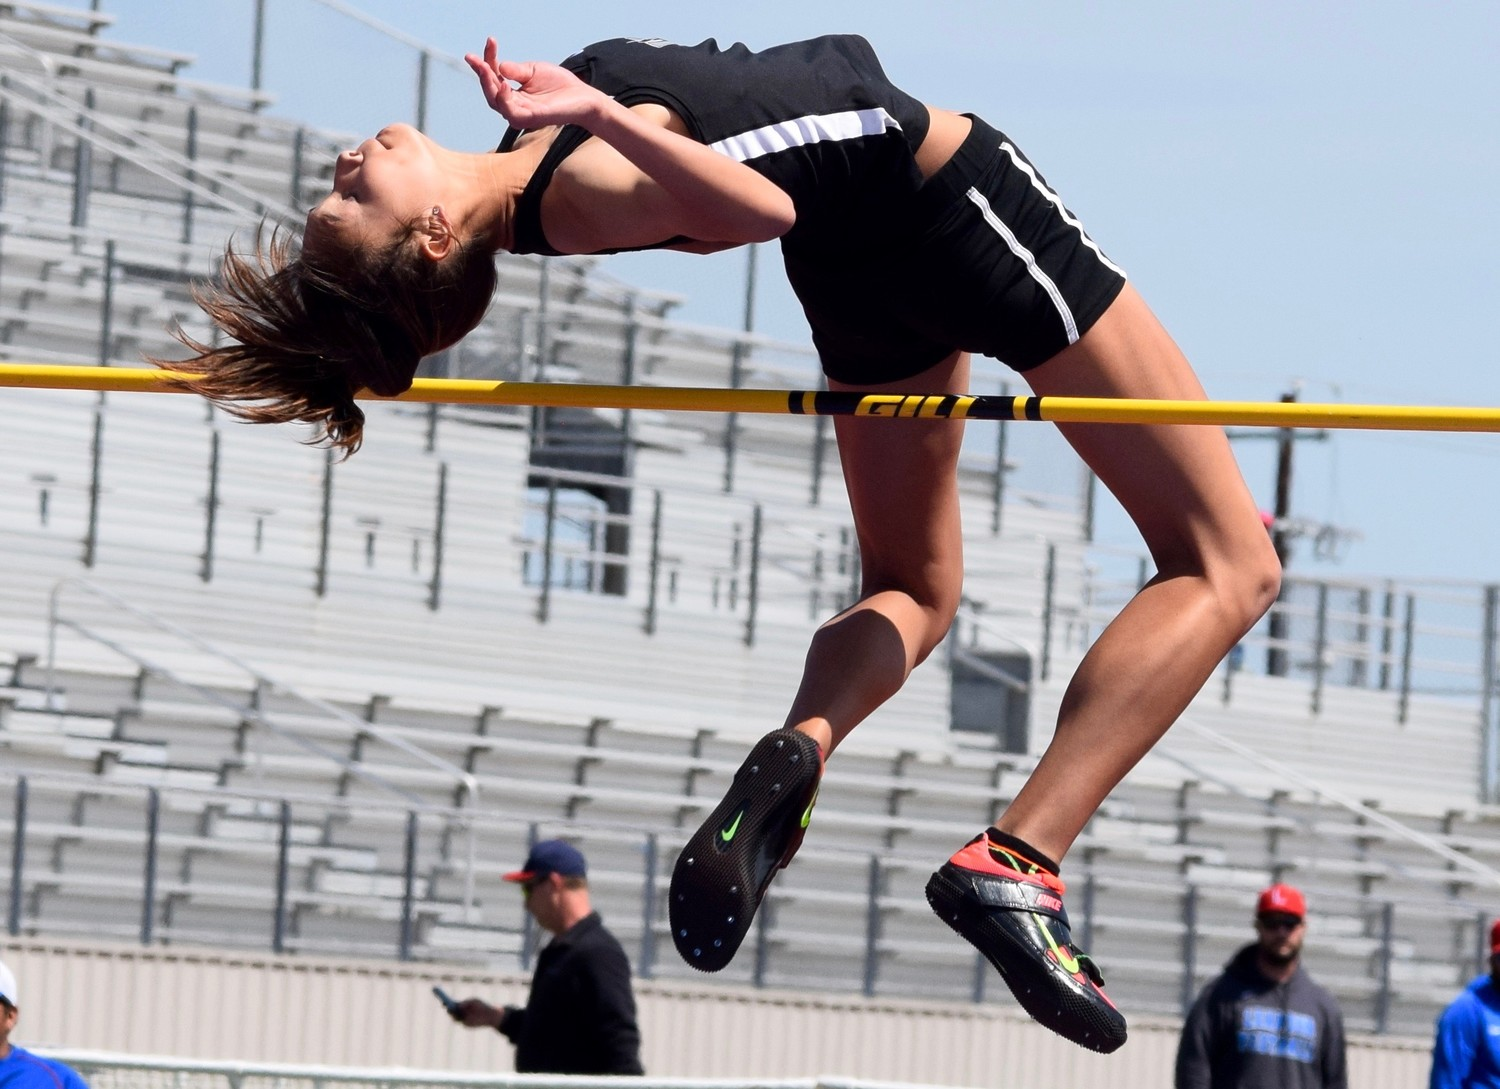 Vandegrift junior Kyla Peeples won the girls' high jump at the District 25-6A meet on Wednesday with a hight of 5 feet 6 inches.